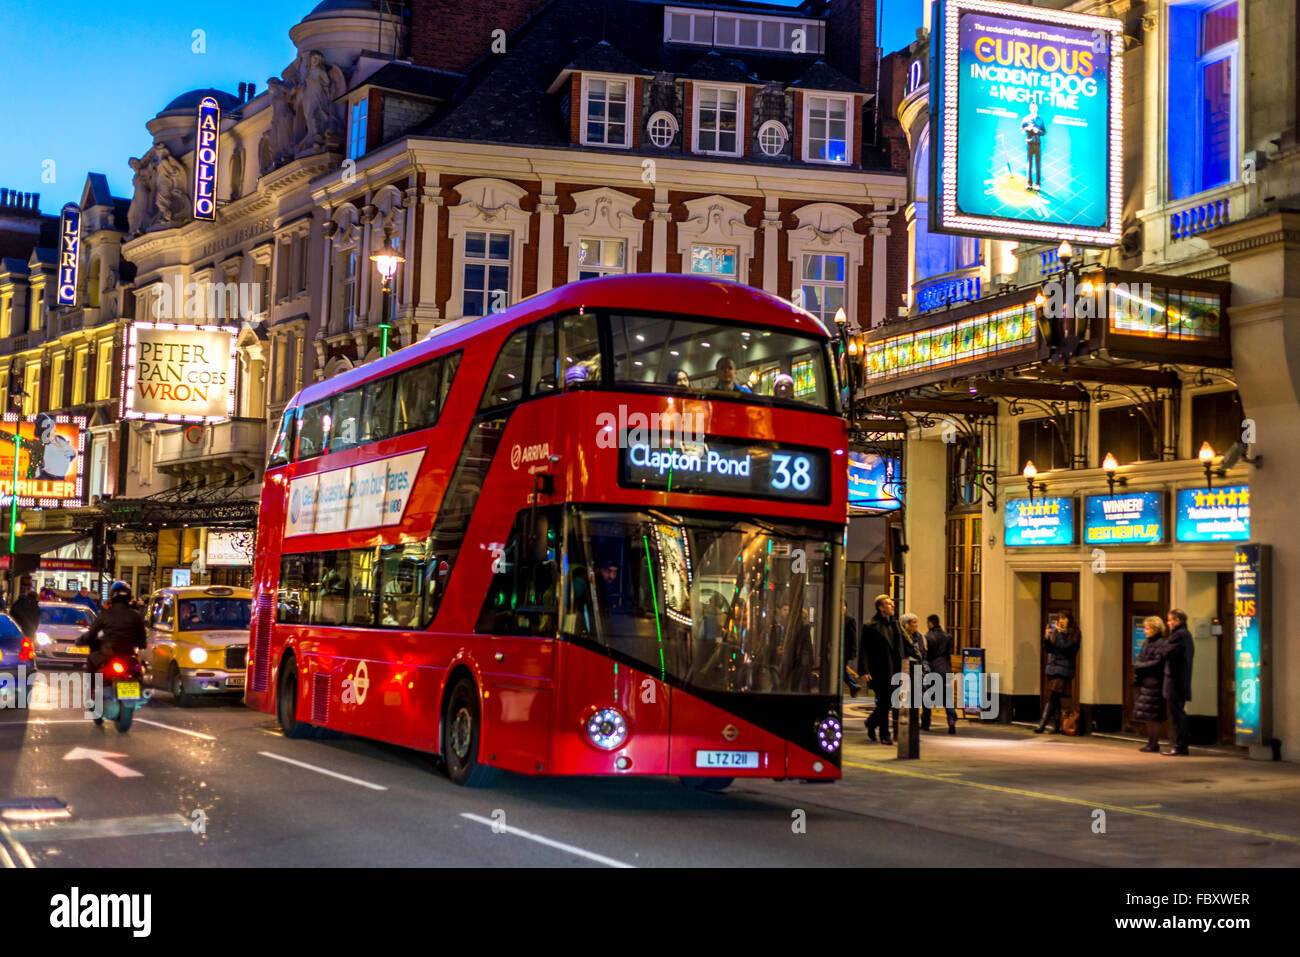 View of Bright Red London bus at twilight, Picadilly Circus, London - Stock Image